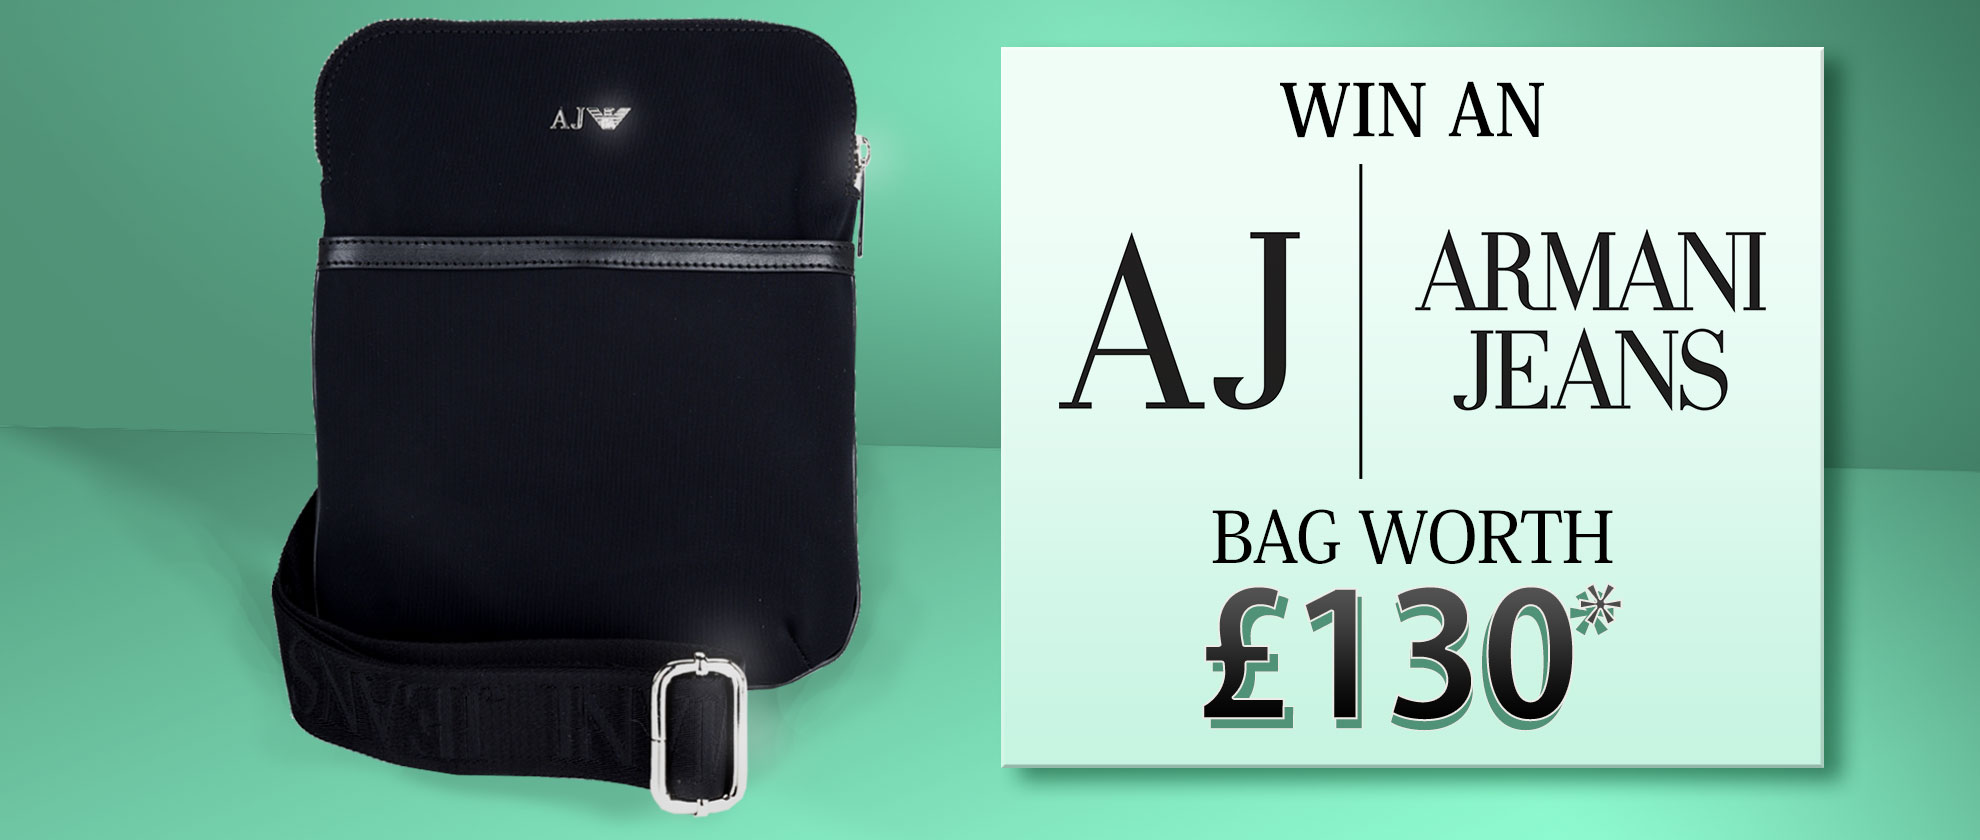 dce031680f6 Competition Closed. Win an Armani Jeans Bag Worth £130!